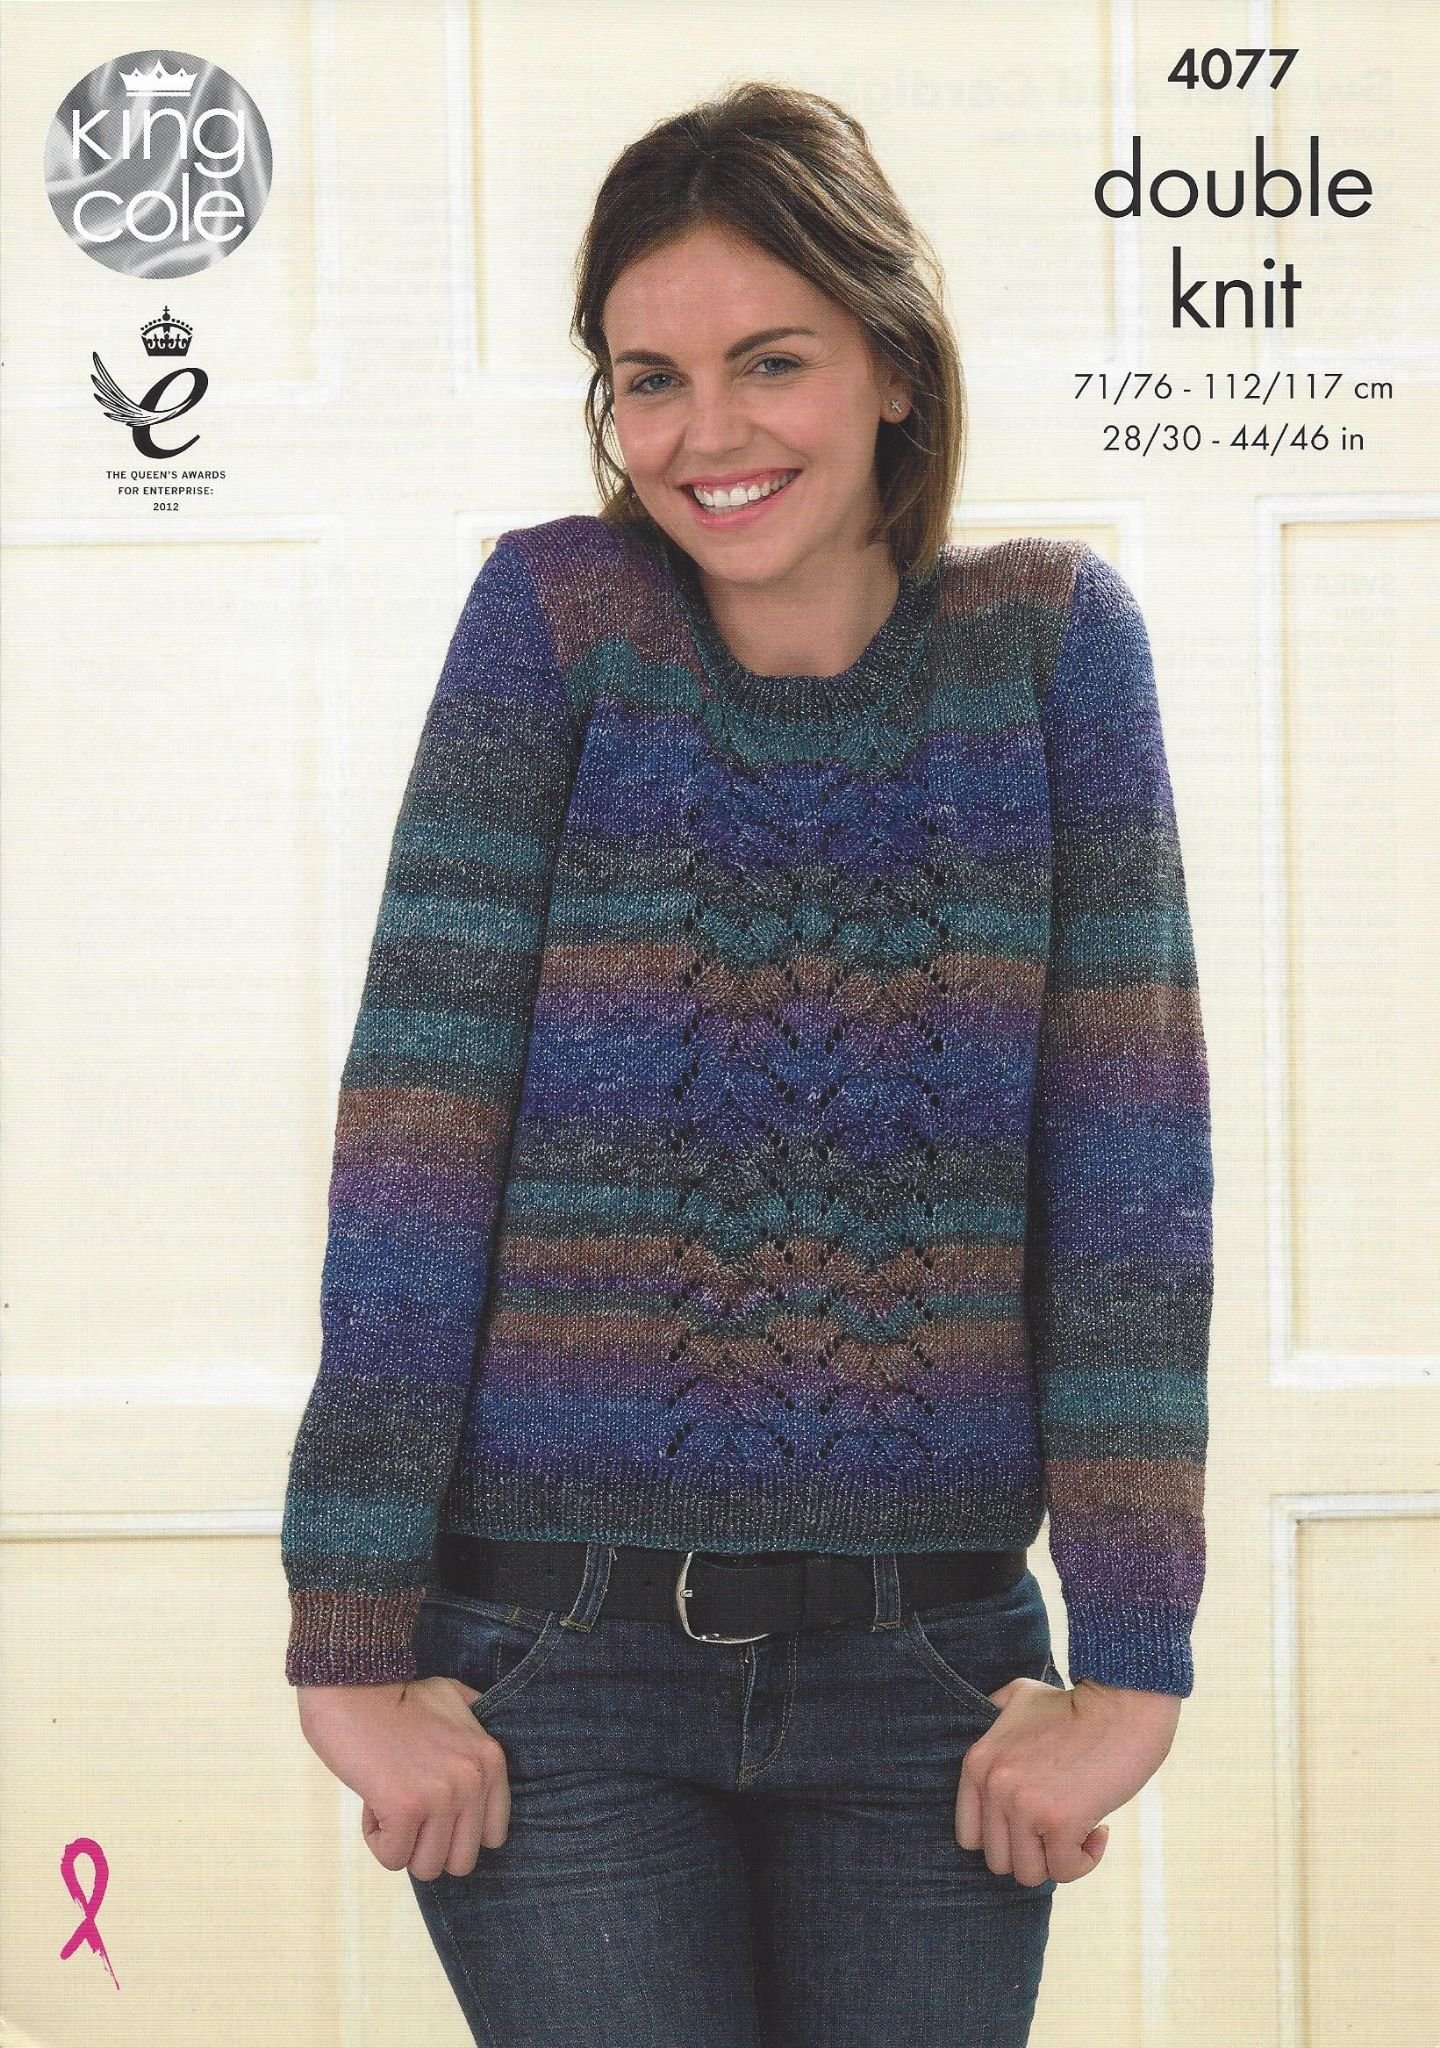 f4f65649fc71 King Cole Shine DK - 4077 Sweater   Cardigan Knitting Pattern